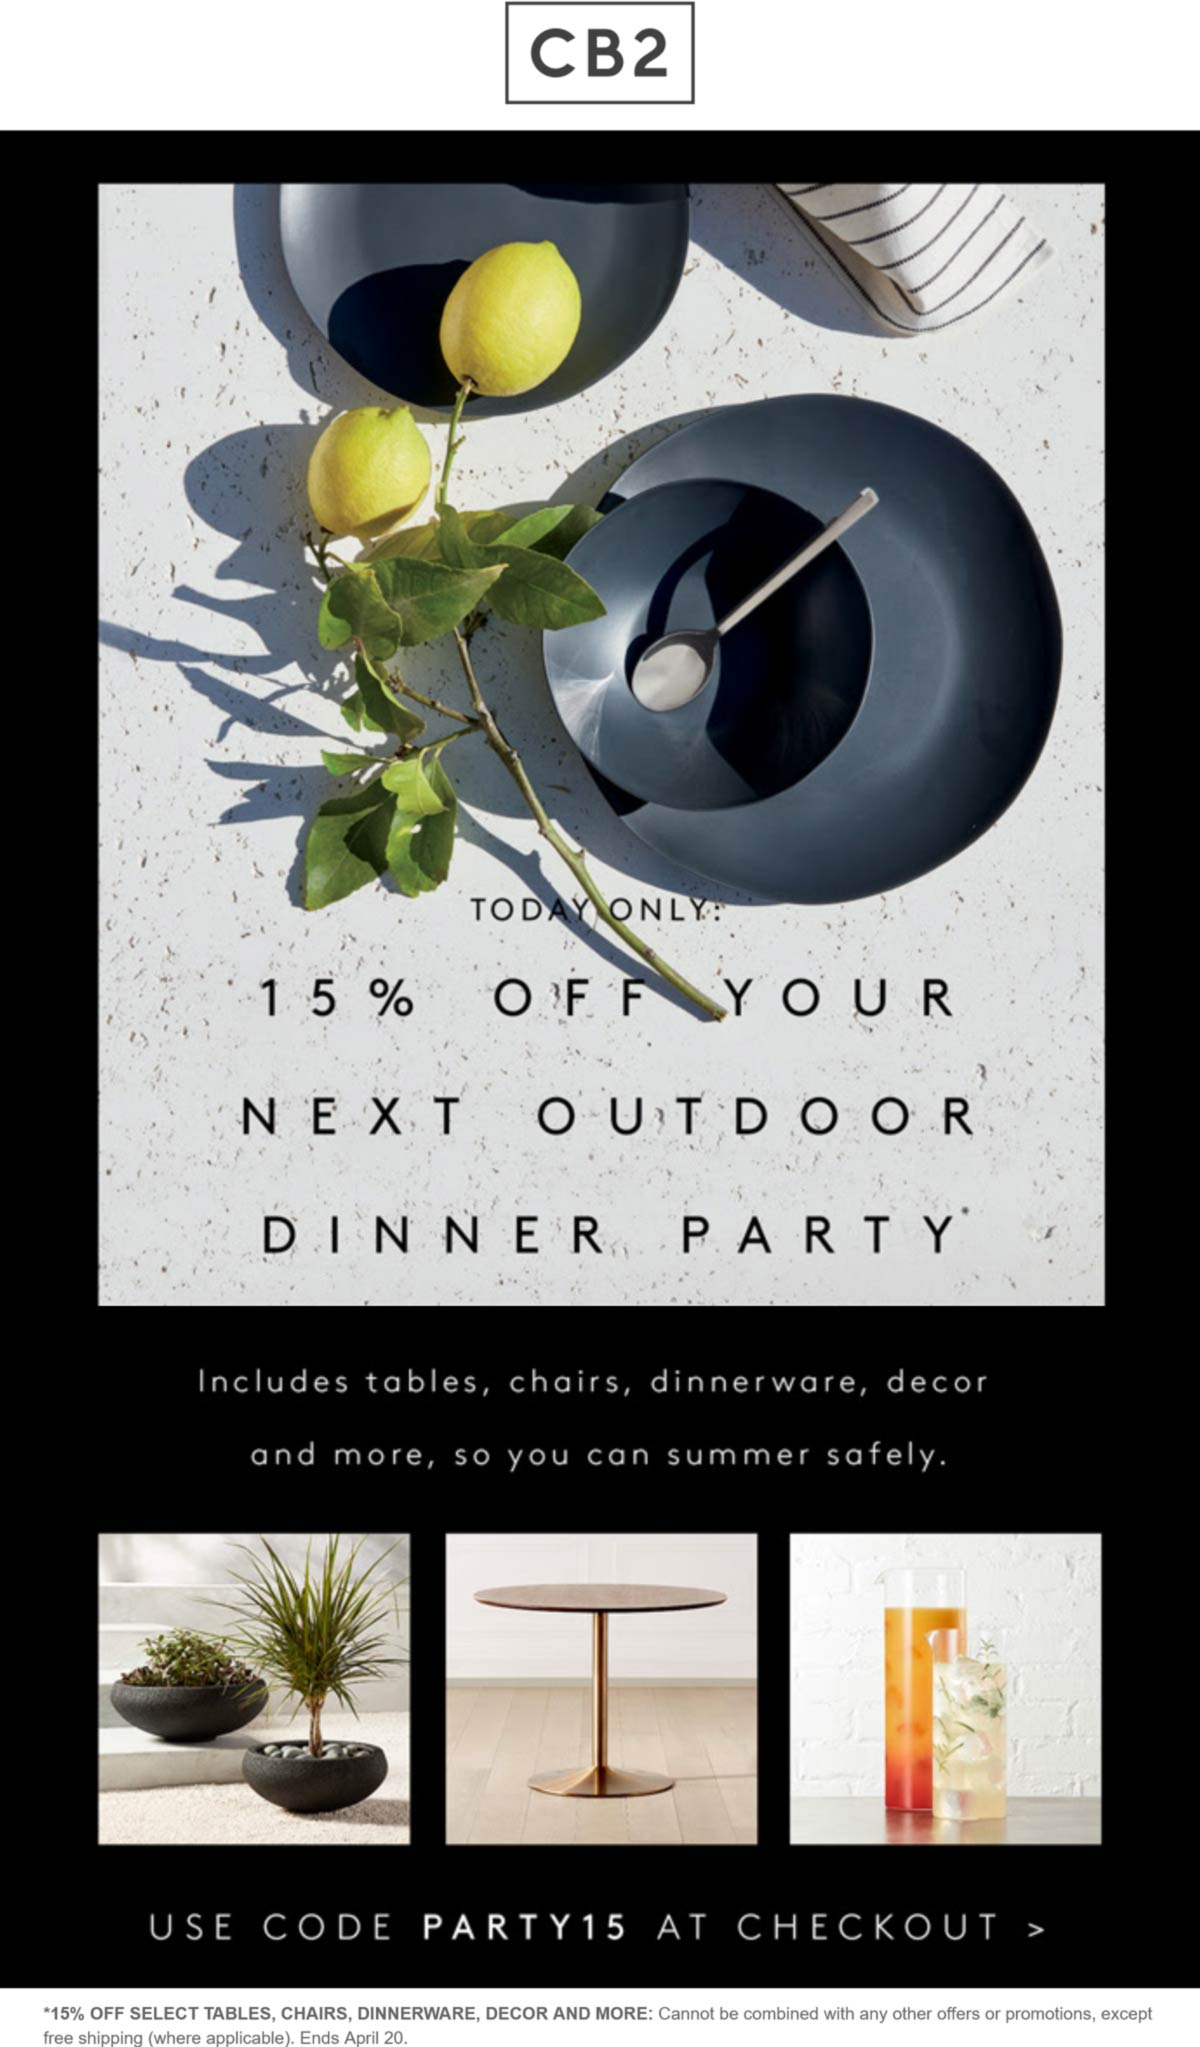 CB2 restaurants Coupon  15% off outdoor dinner party decor today at Crate & Barrel CB2 via promo code PARTY15 #cb2